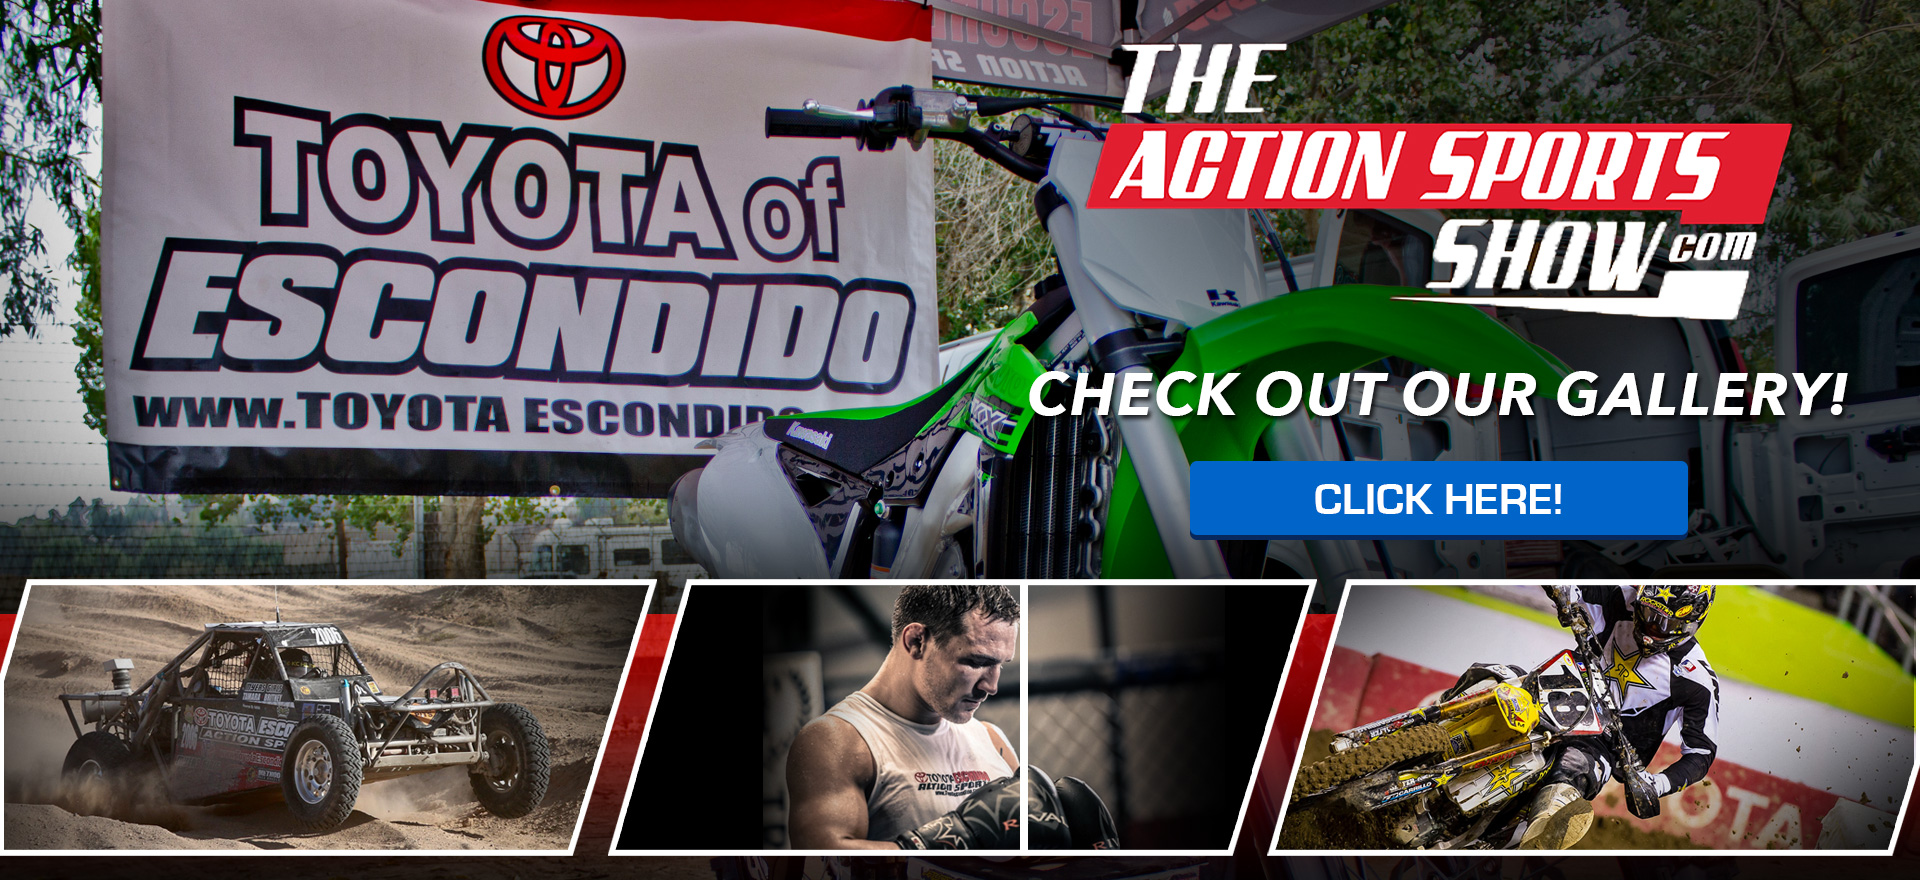 Action Sports Gallery